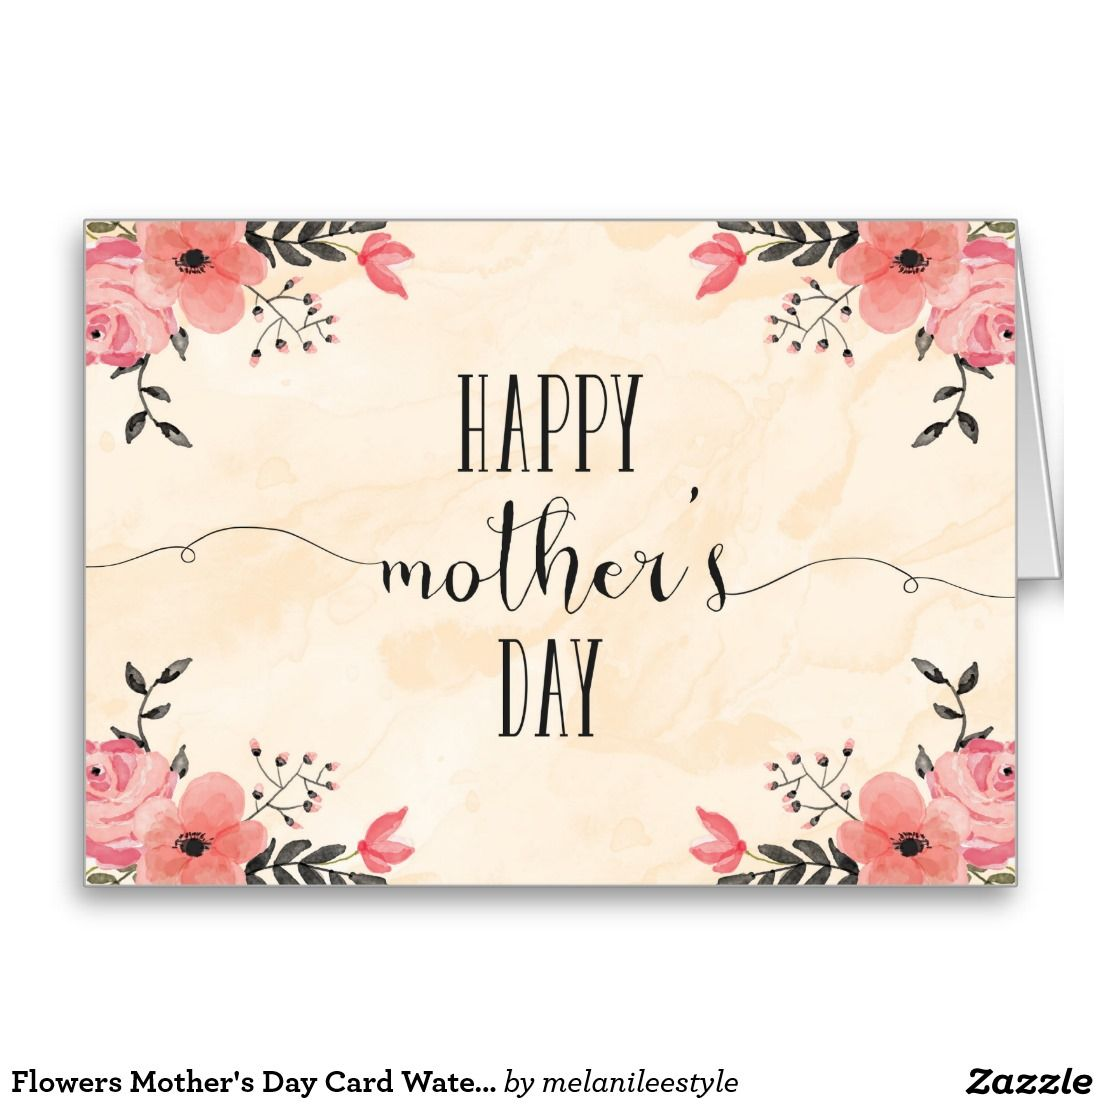 Flowers Mother S Day Card Watercolor Zazzle Com Happy Mother S Day Card Mother S Day Gift Card Mother S Day Greeting Cards